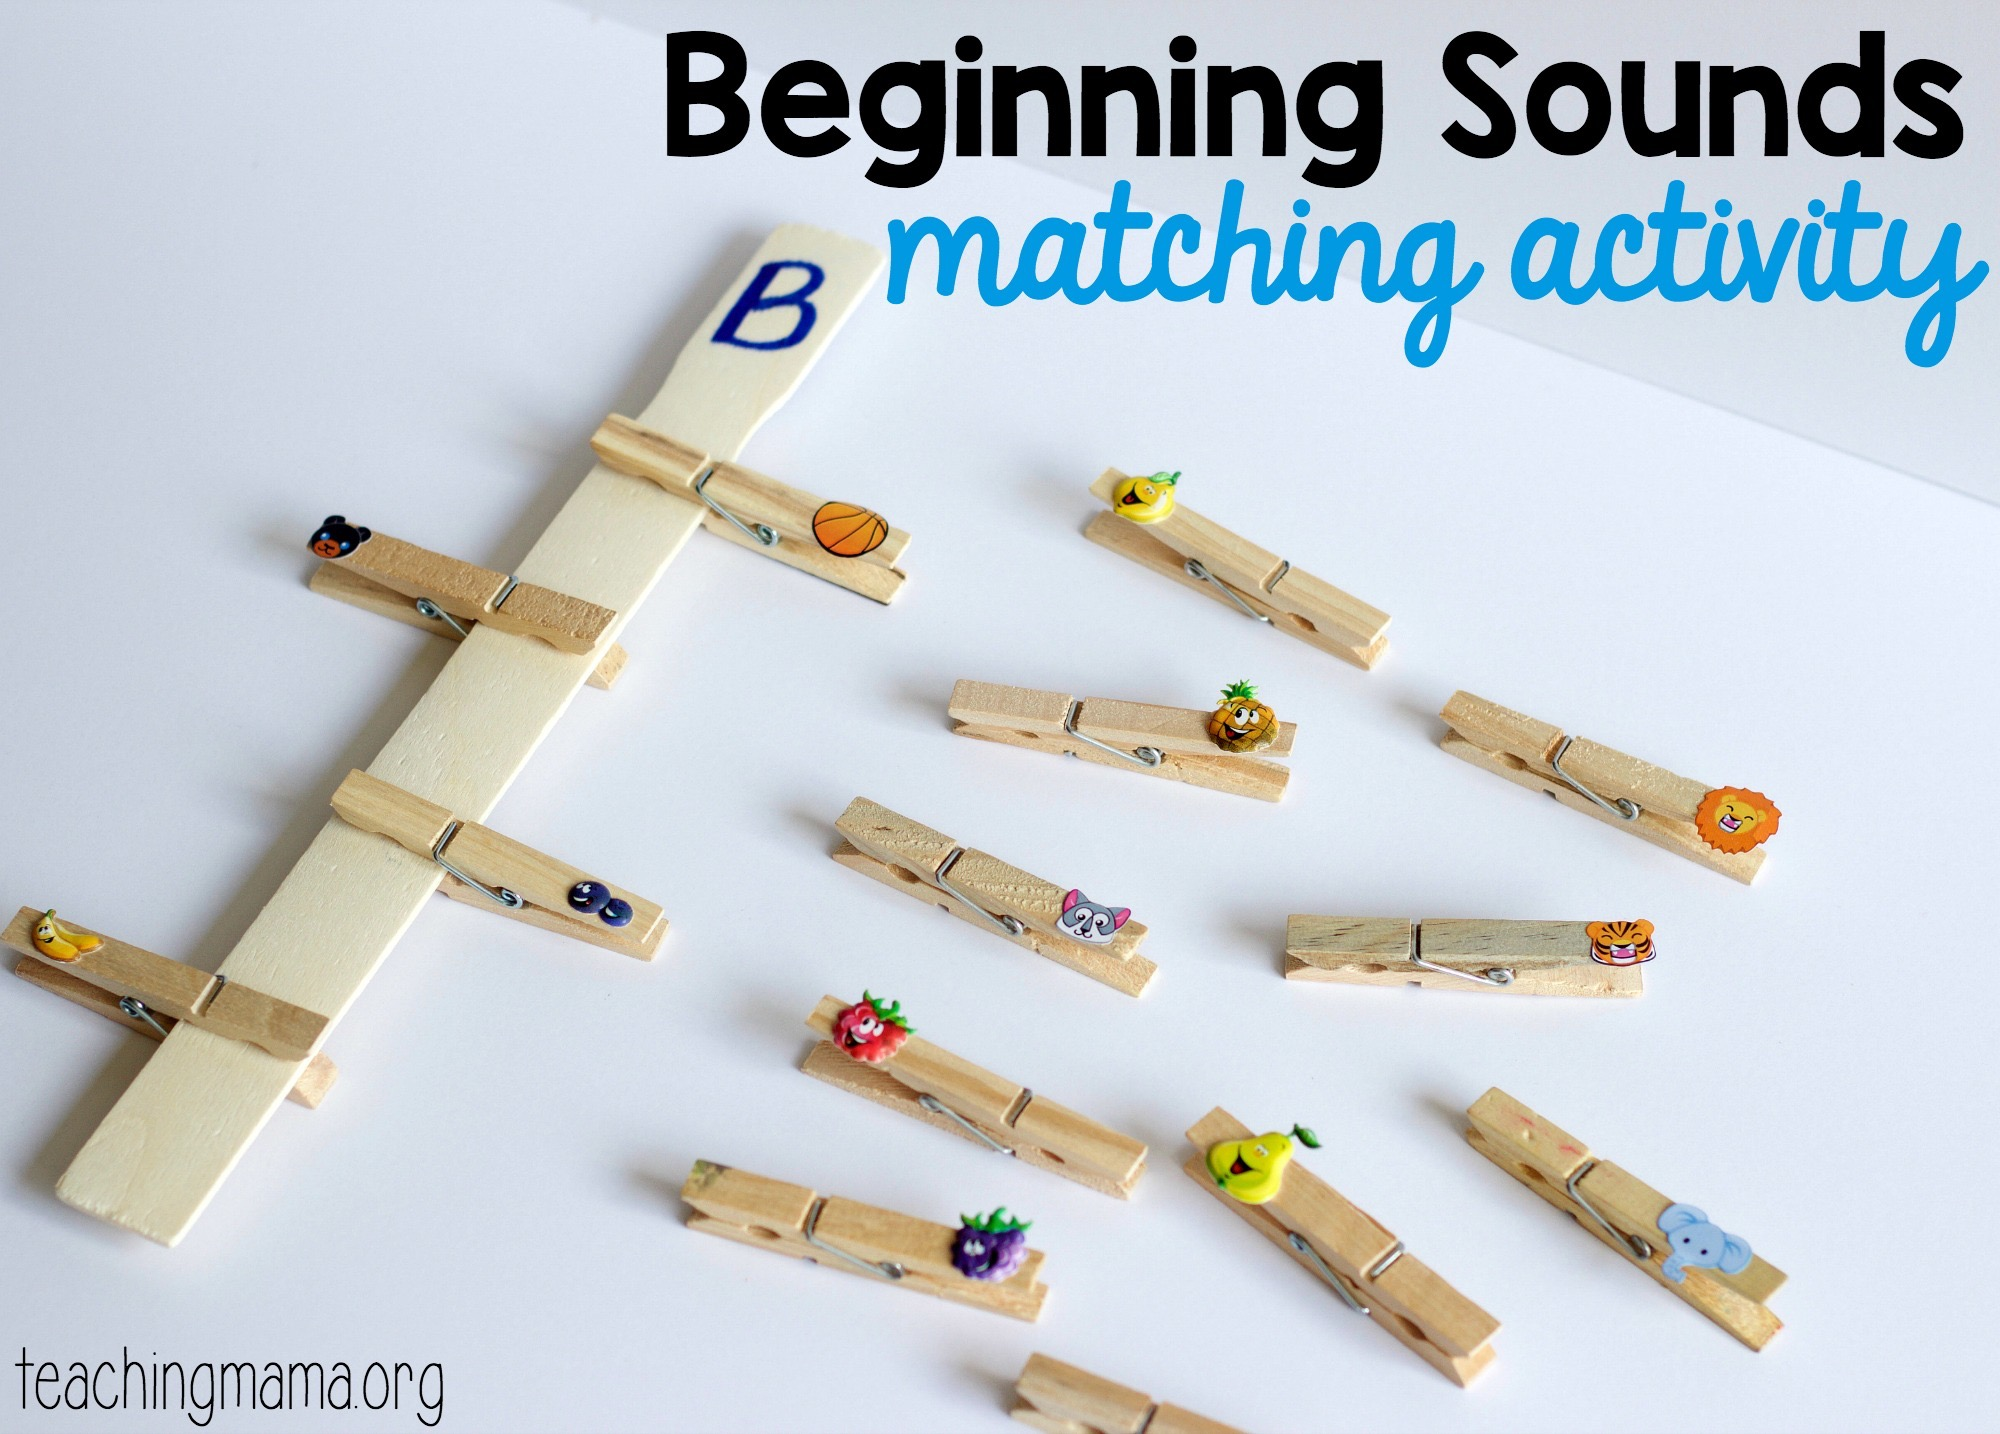 Beginning Sounds Matching Activity